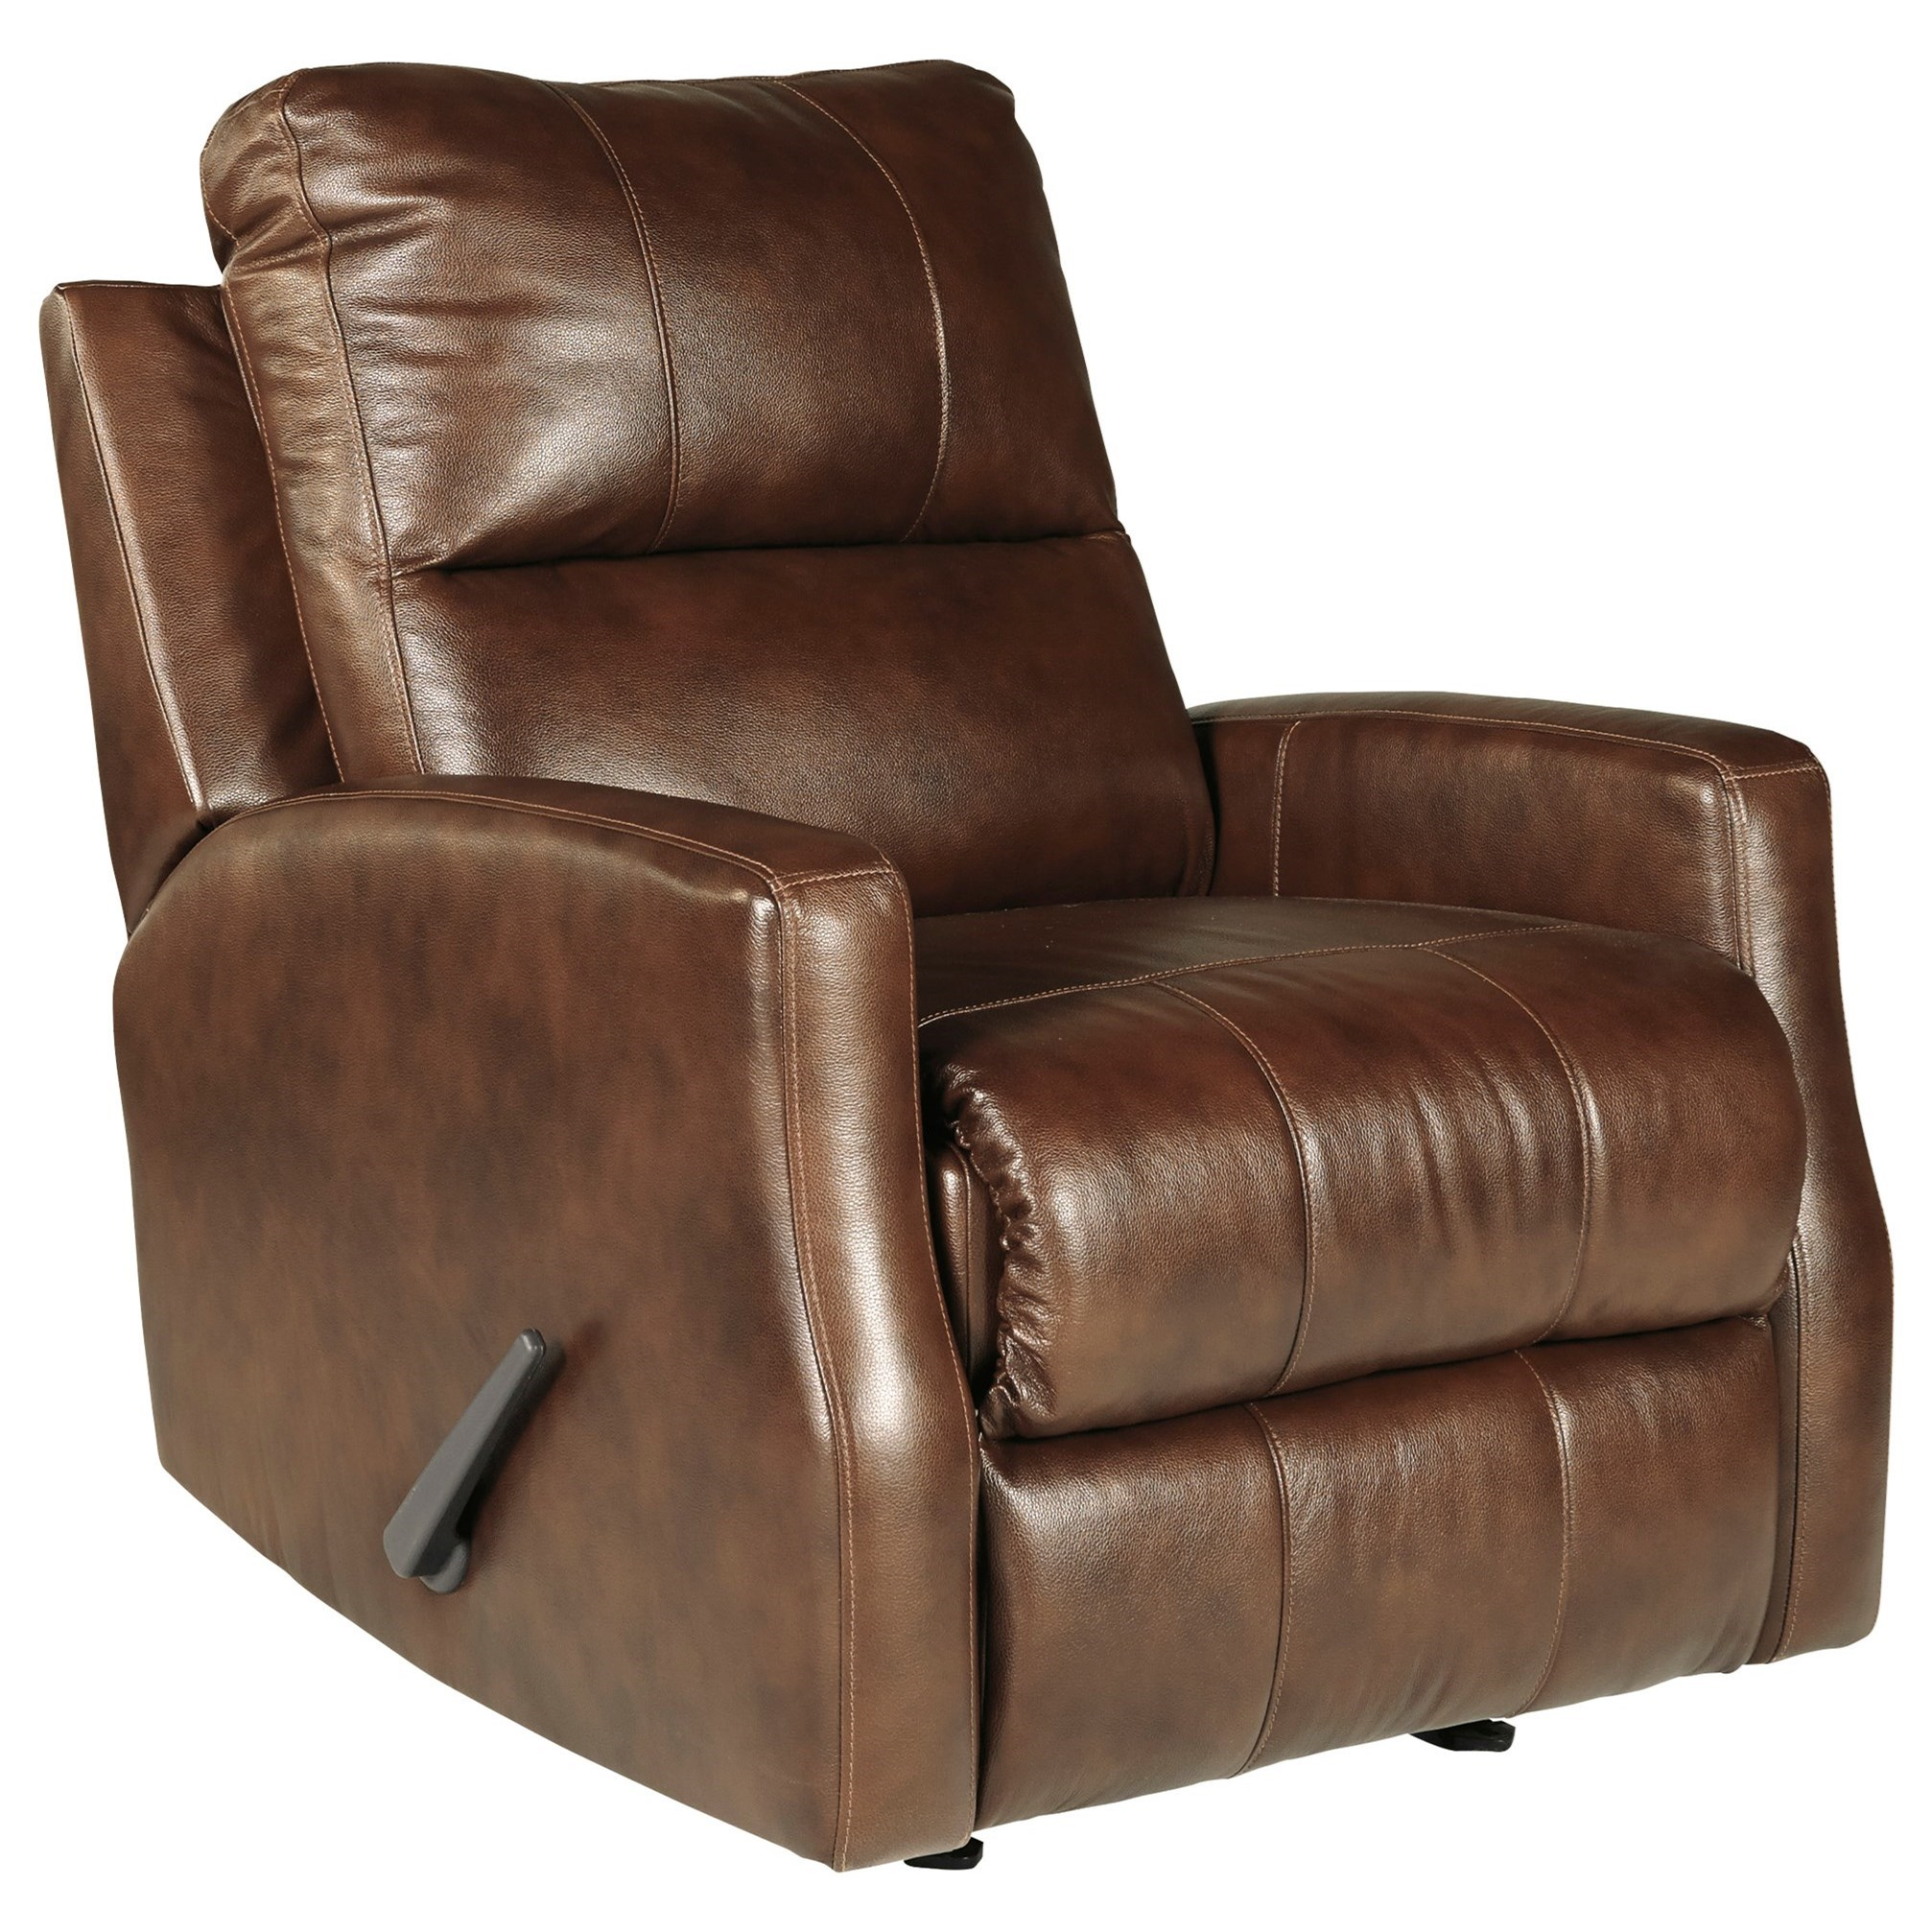 Signature Design by Ashley Gulfbay Rocker Recliner - Item Number: 4470125